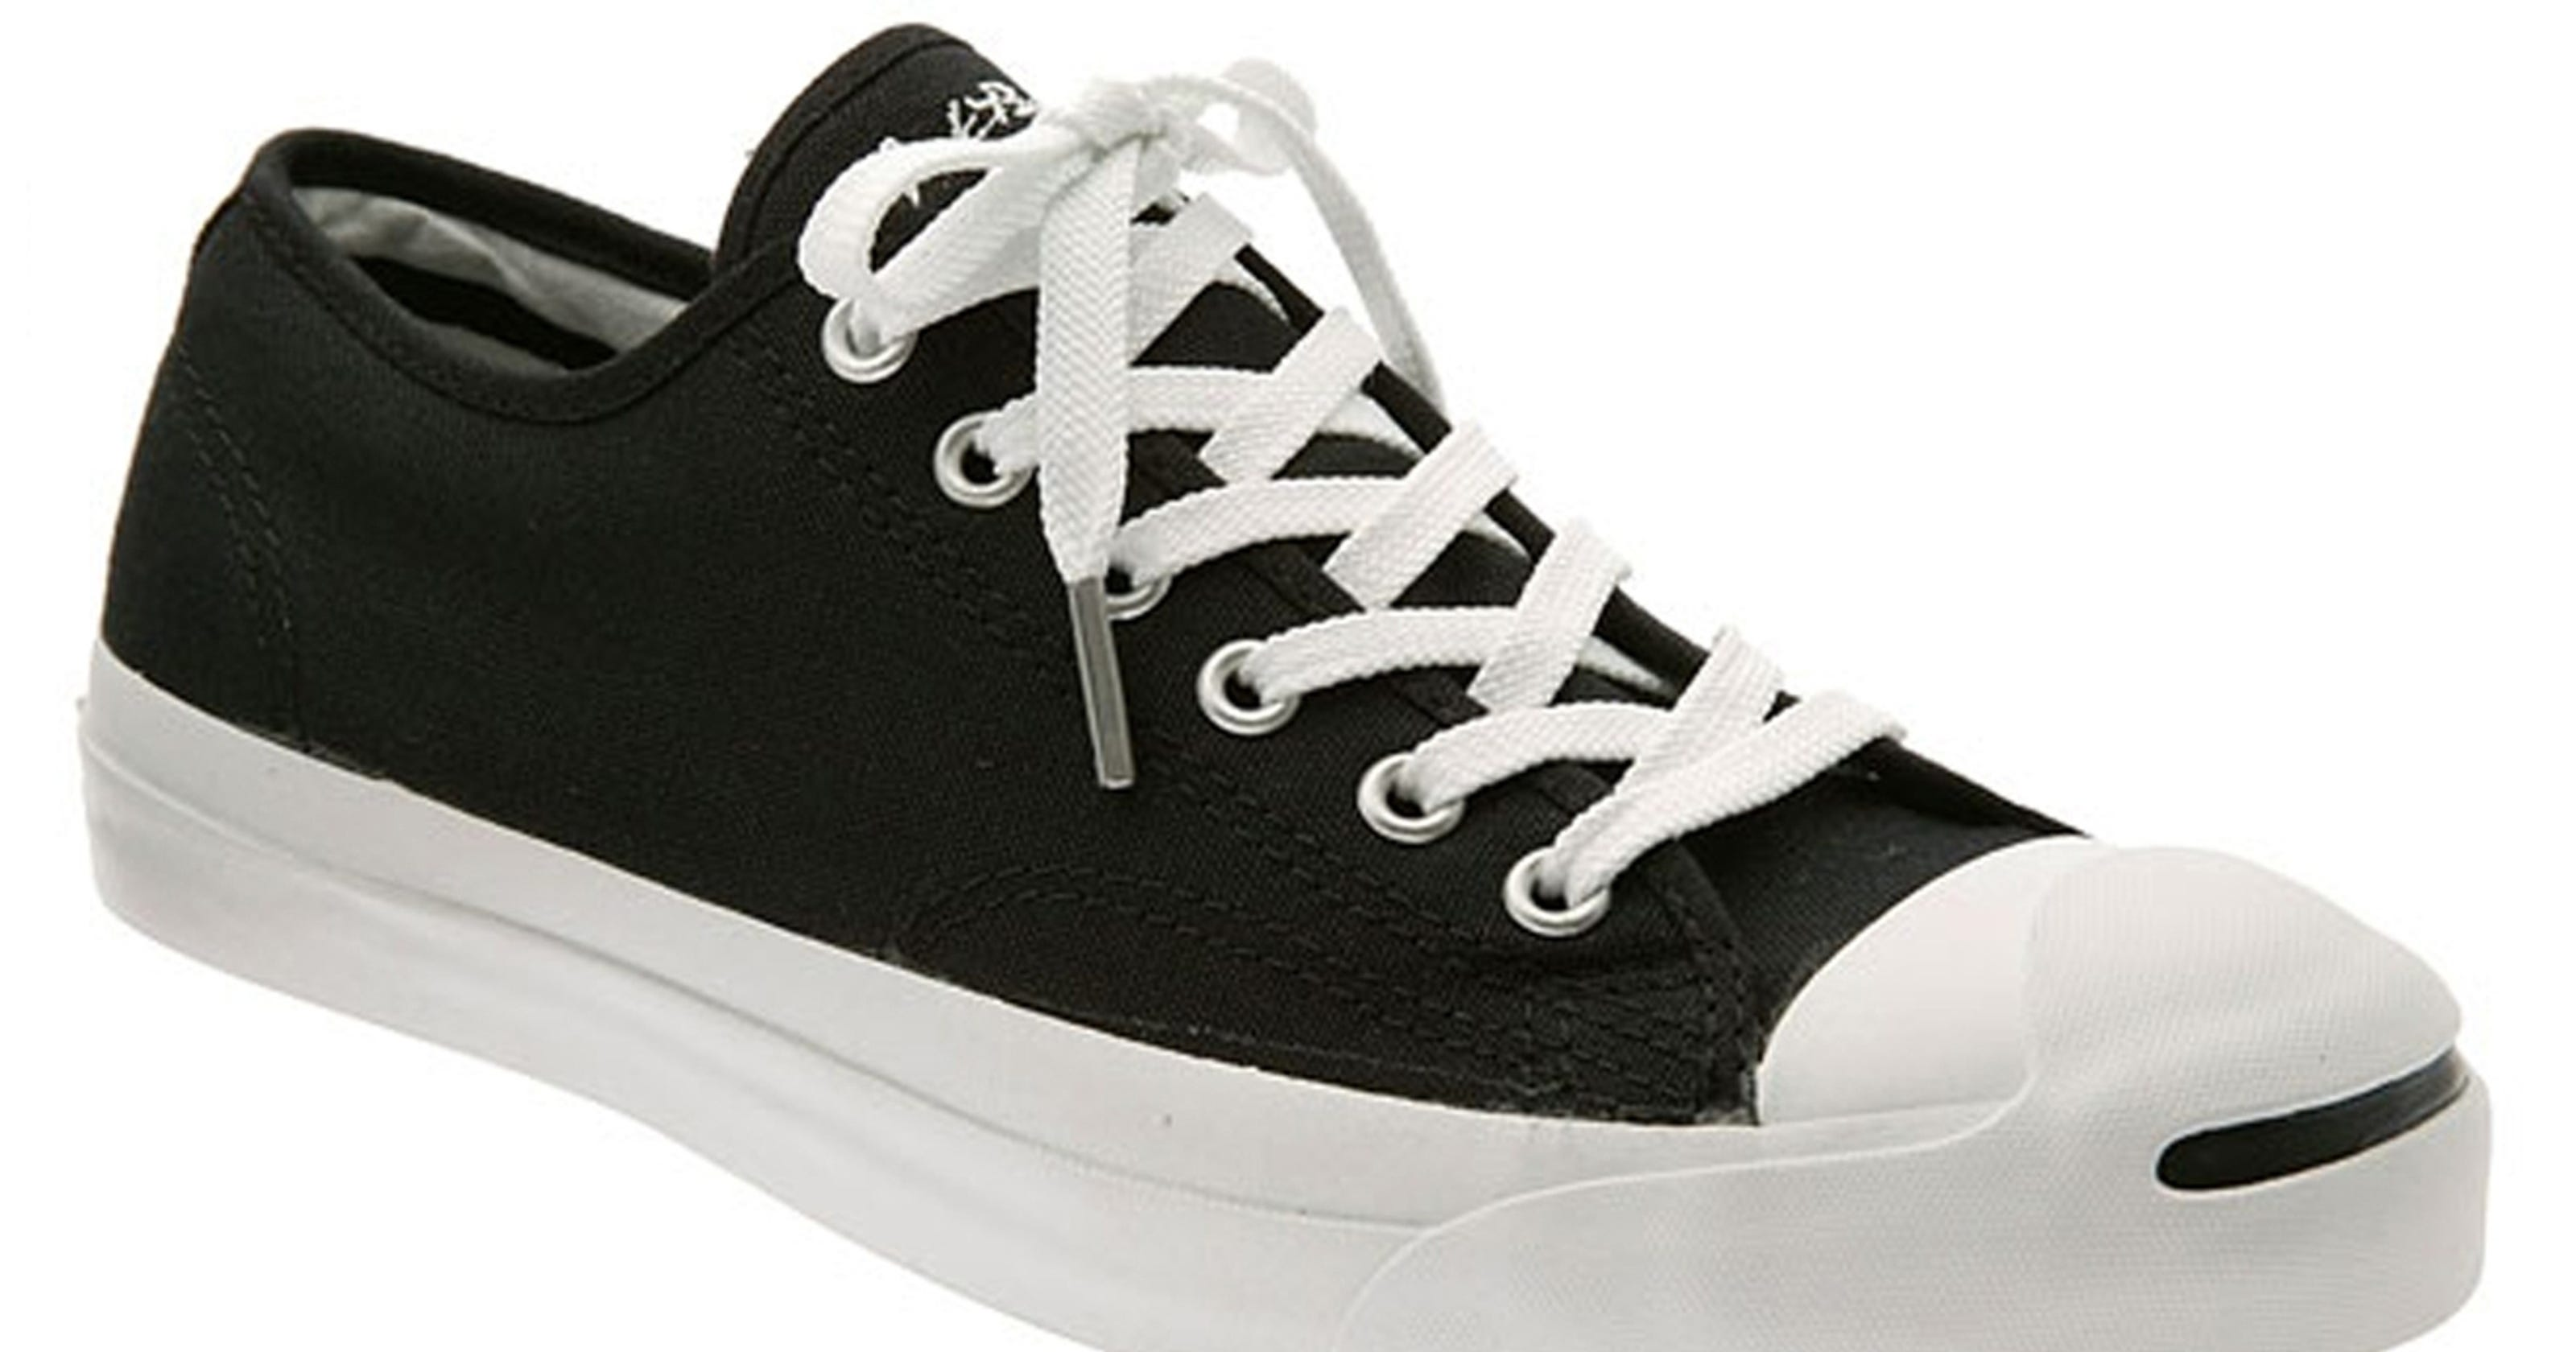 264d3b69d245 You Don t Know Jack (Purcell)